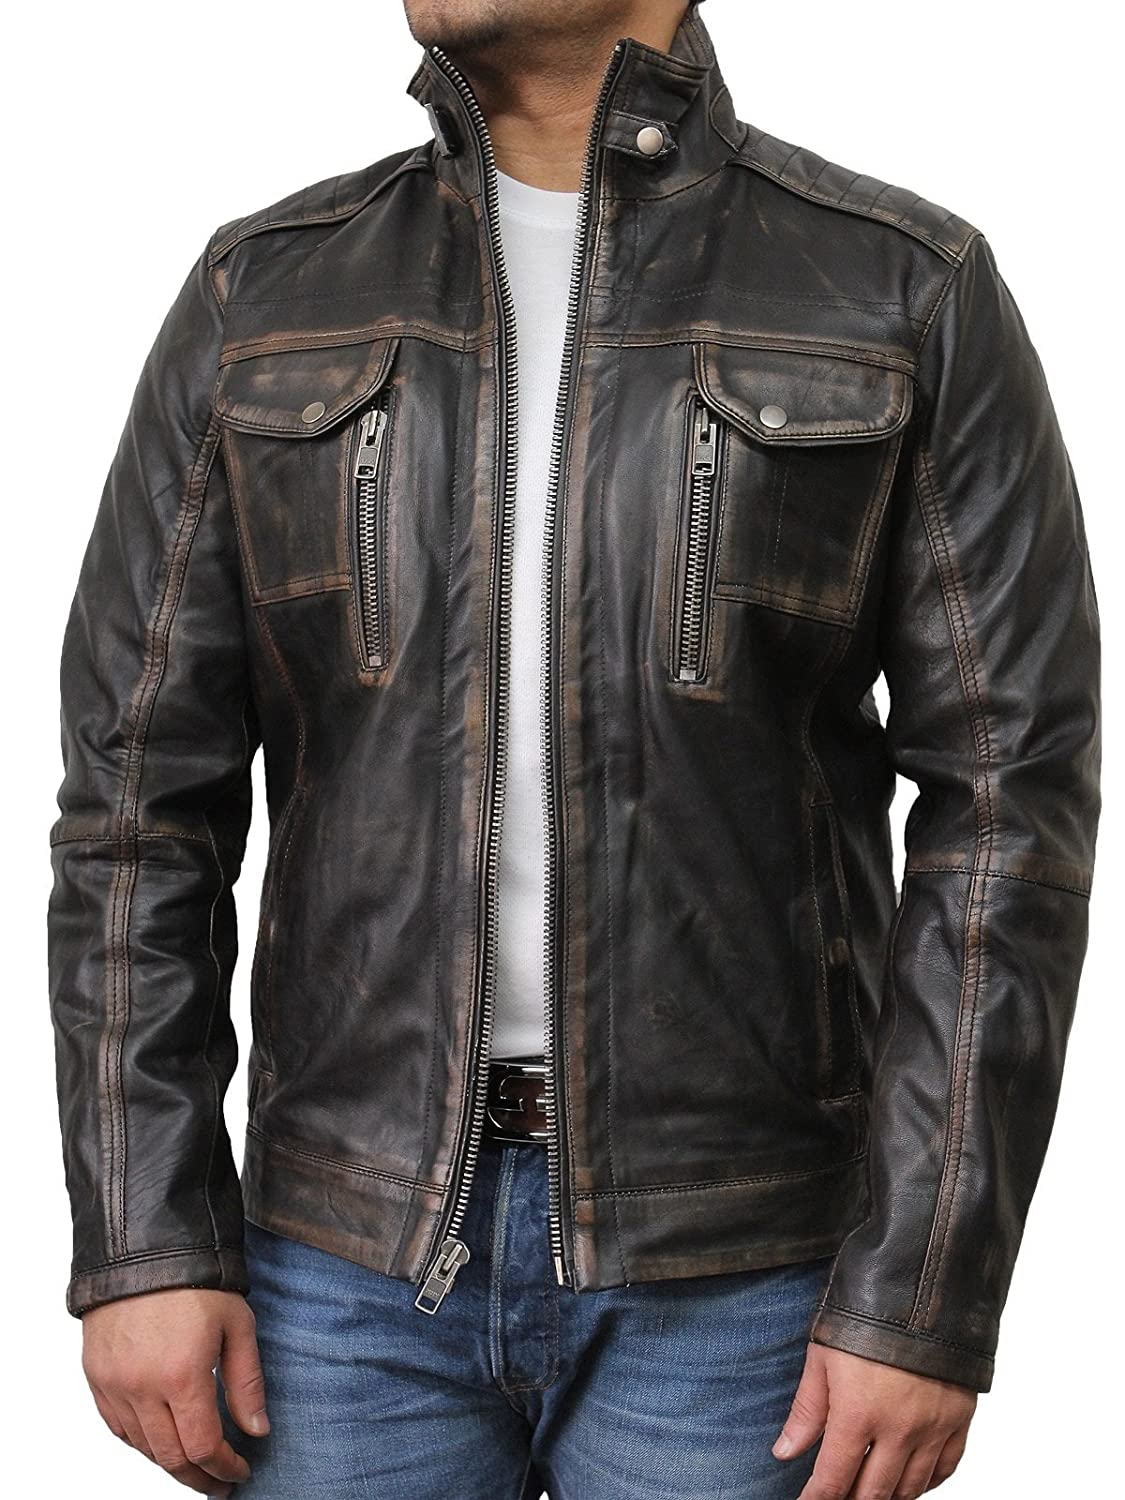 Mens Leather Biker Jacket Vintage Distressed Genuine Leather Motorcycle Jacket